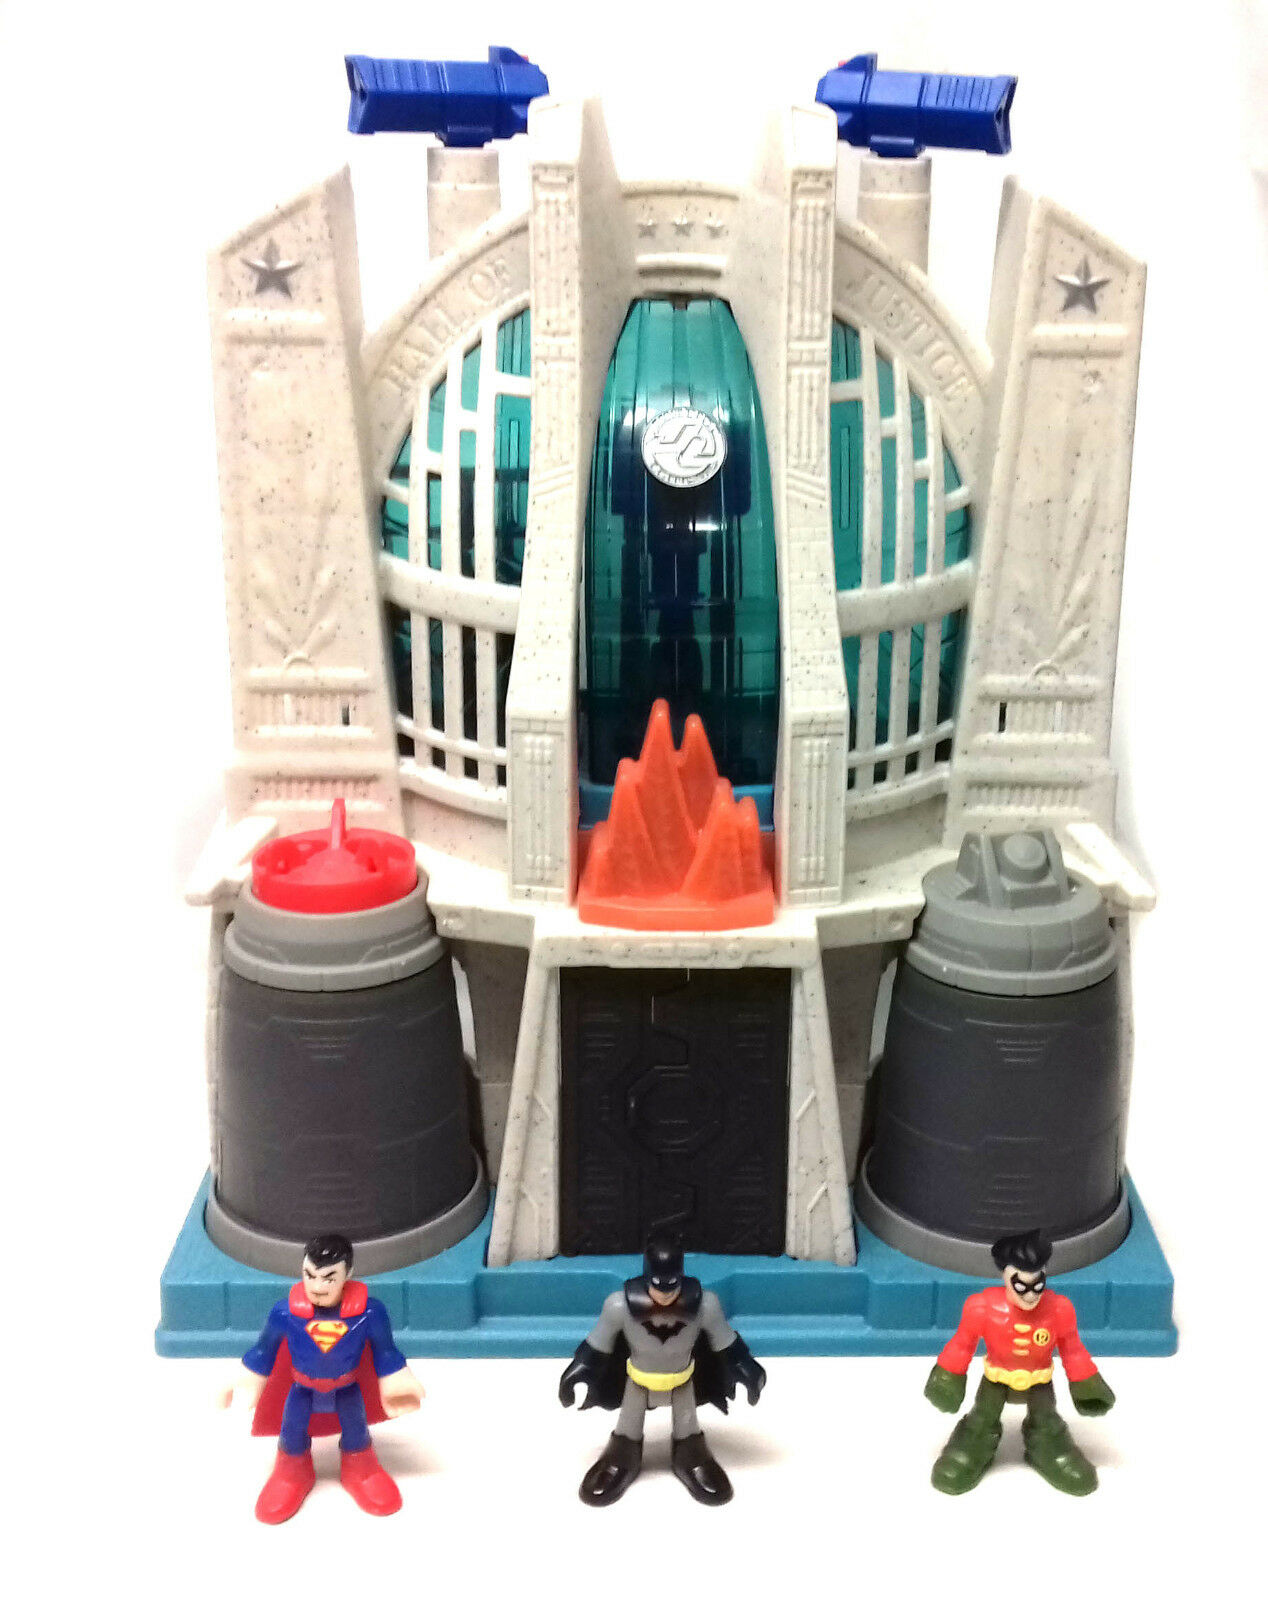 DC Fisher Price toys IMAGINEXT BATMAN HALL OF JUSTICE & 3 figures set